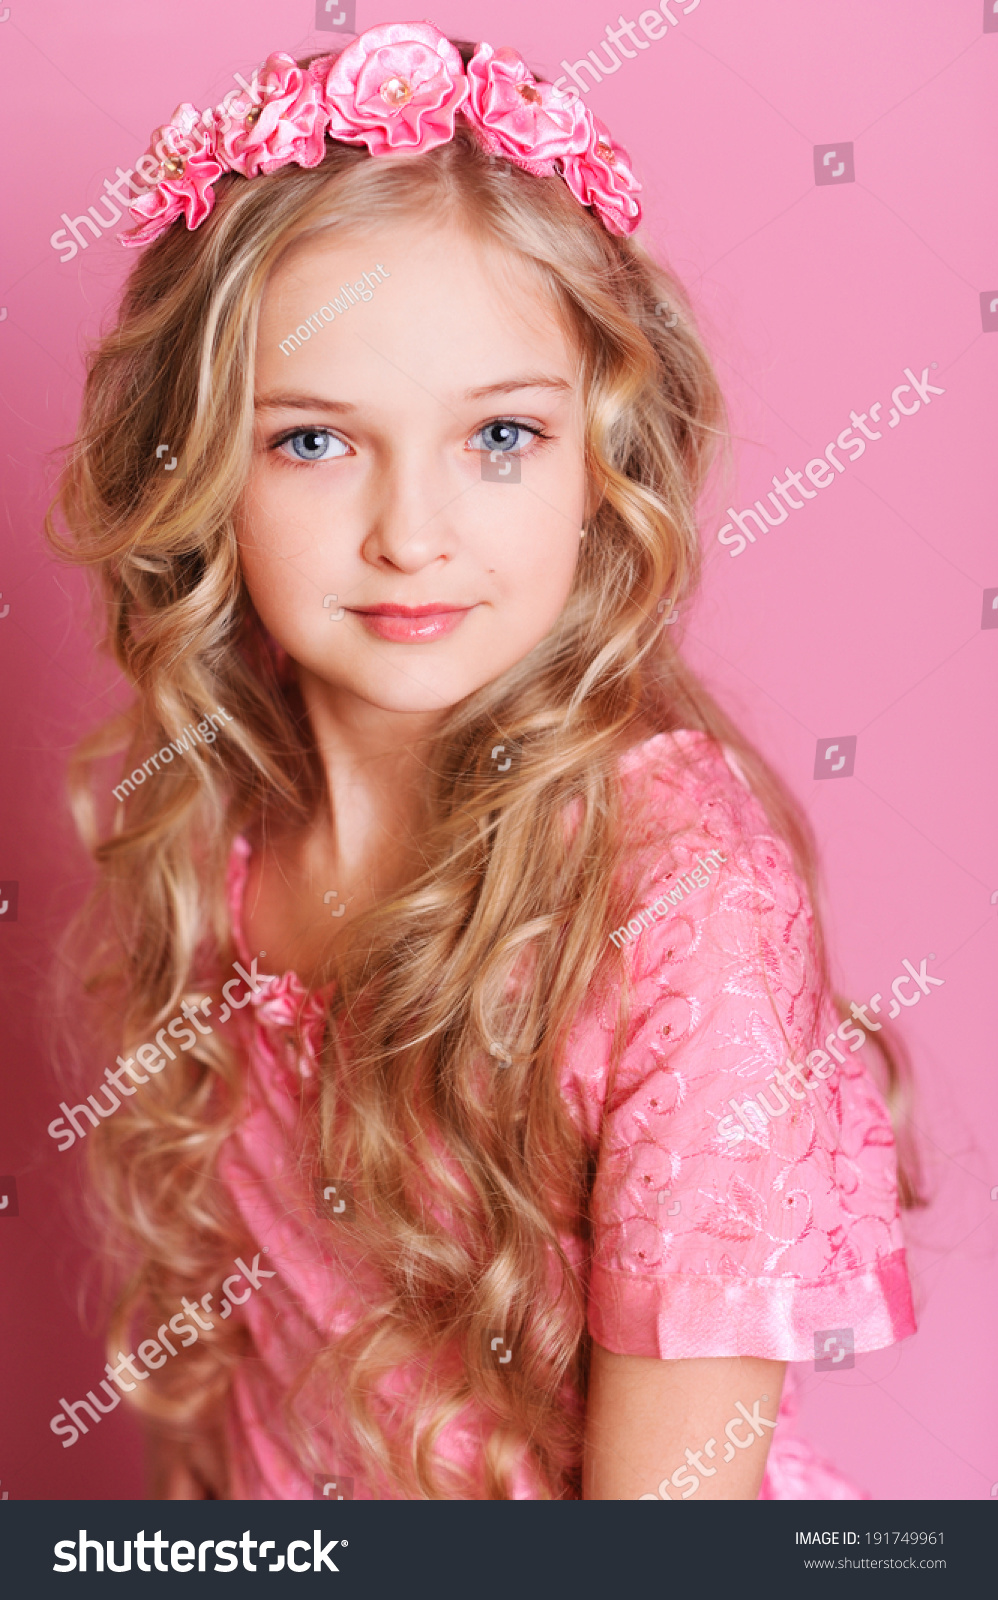 10 Cute Guys With Blonde Hair: Cute Kid Girl 10 Years Old Stock Photo 191749961